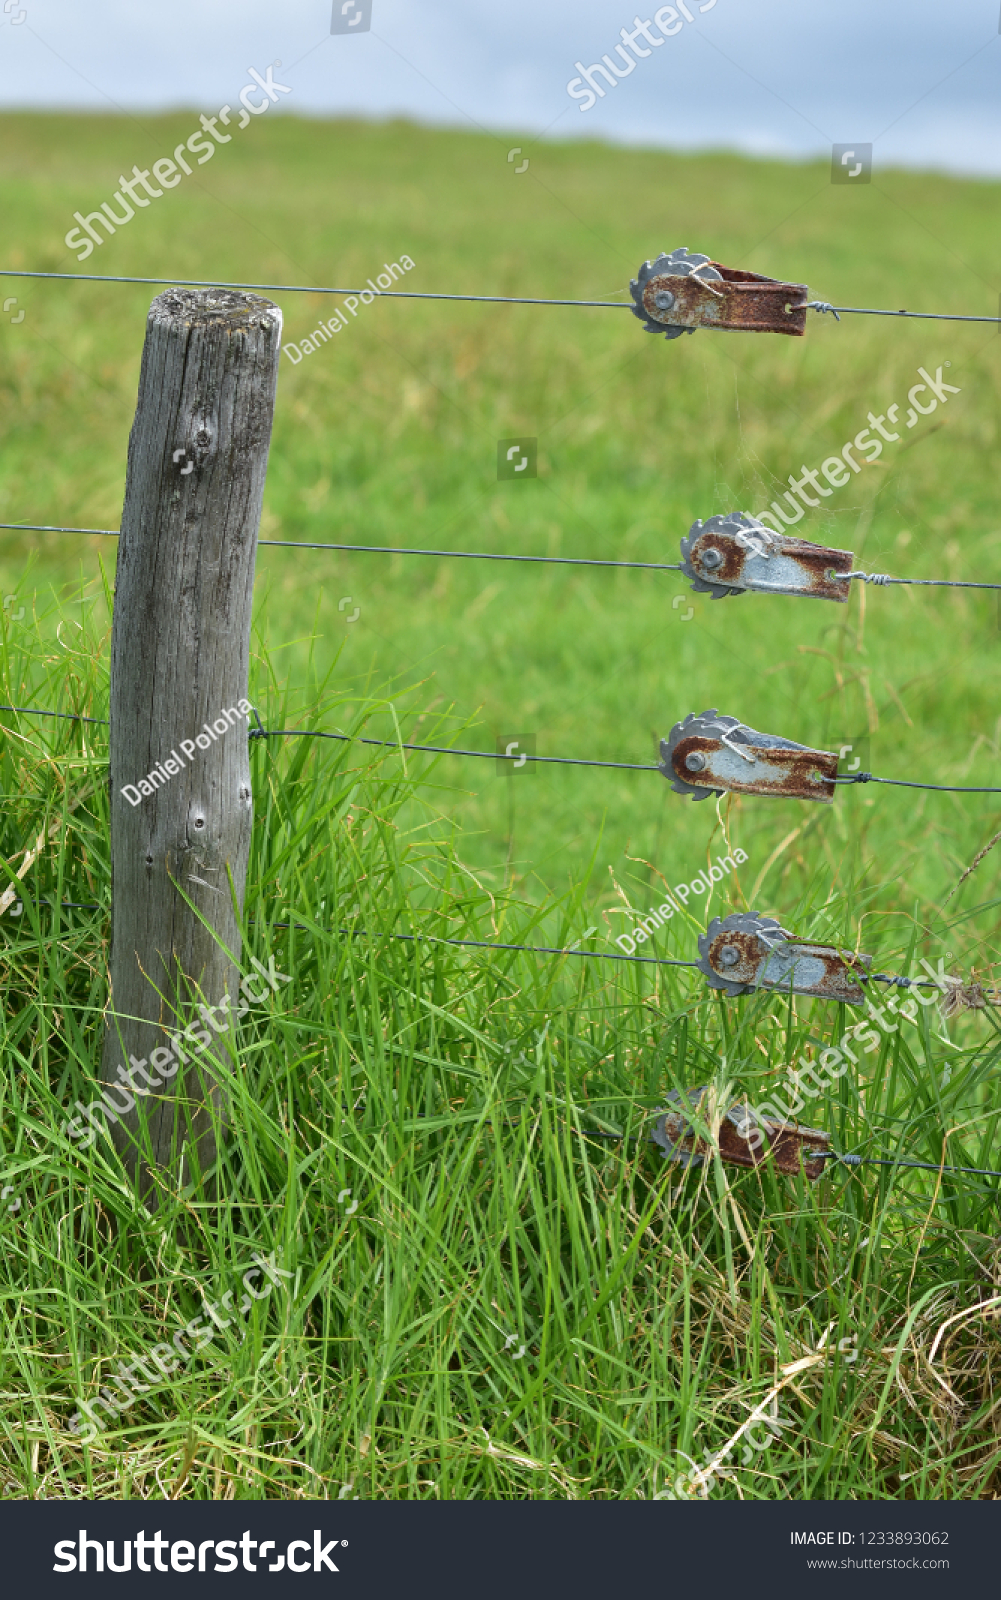 Weathered Wooden Pole Wires Cattle Electric Stock Photo Edit Now Wiring Fence And Of With Green Farmland In Background